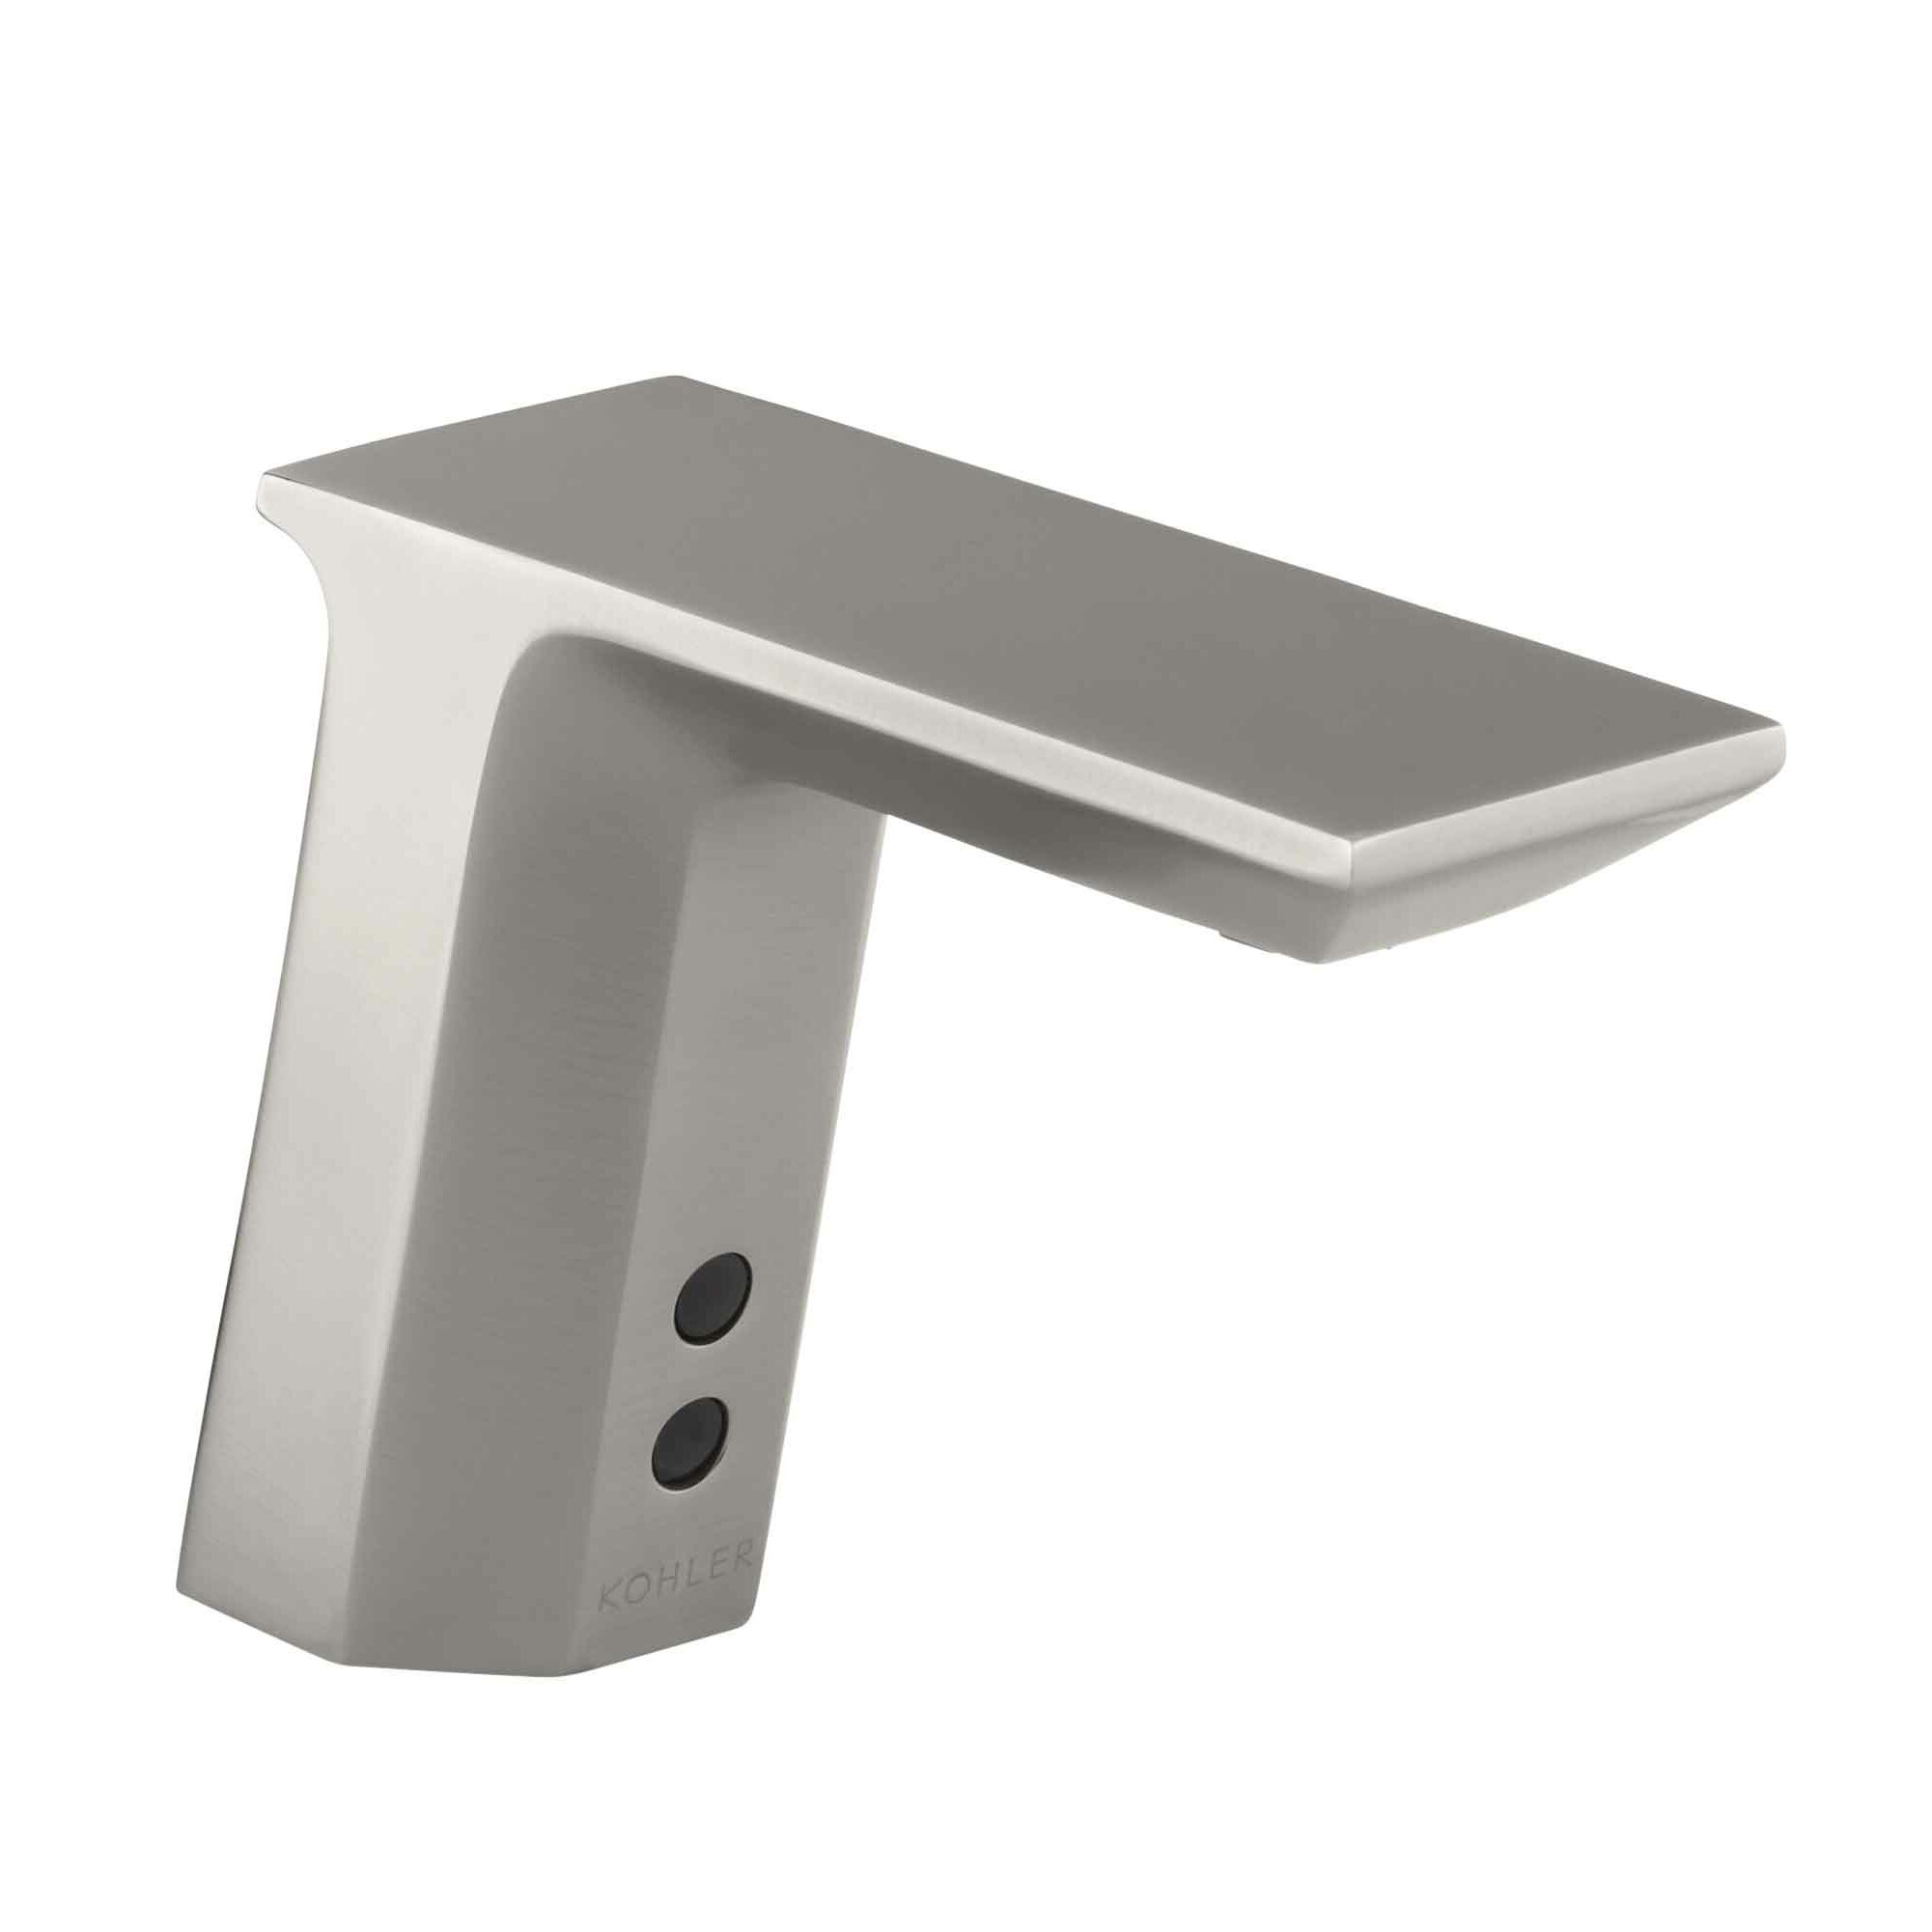 Kohler Geometric Single Hole Touchless Dc Powered Commercial Bathroom Sink Faucet With Insight